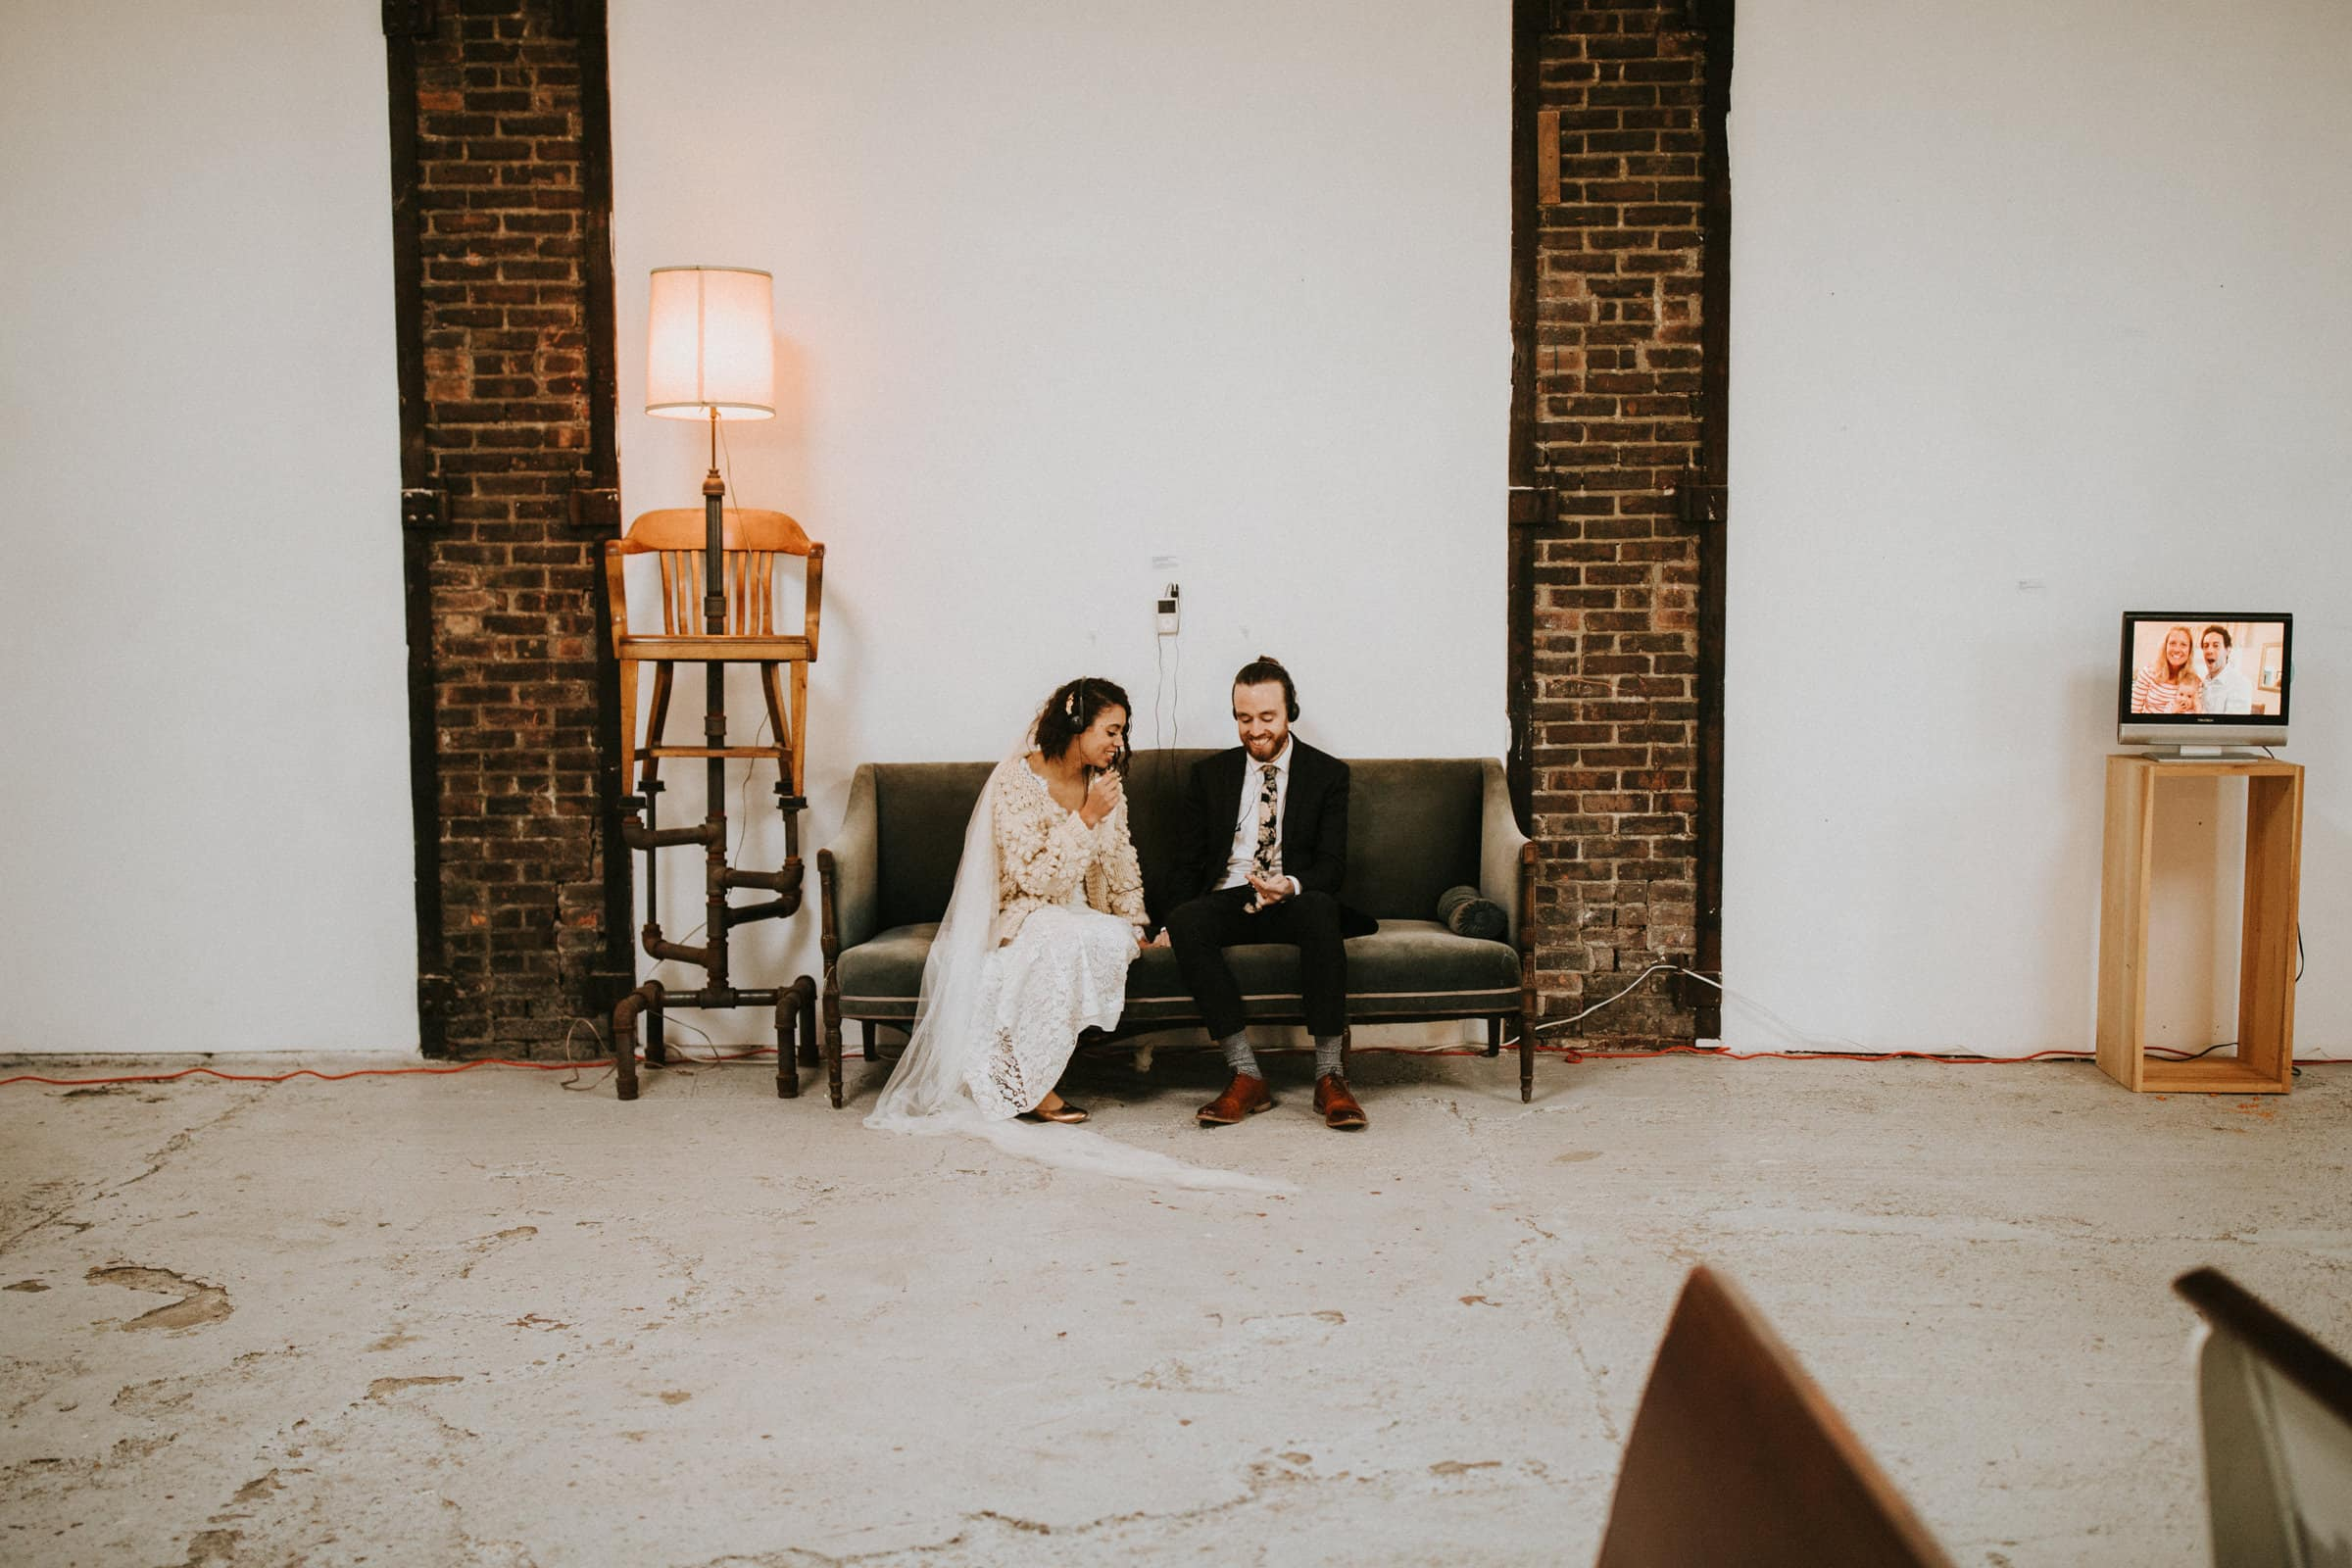 The wedding couple is on a sofa and listening to a podcast from their friends.